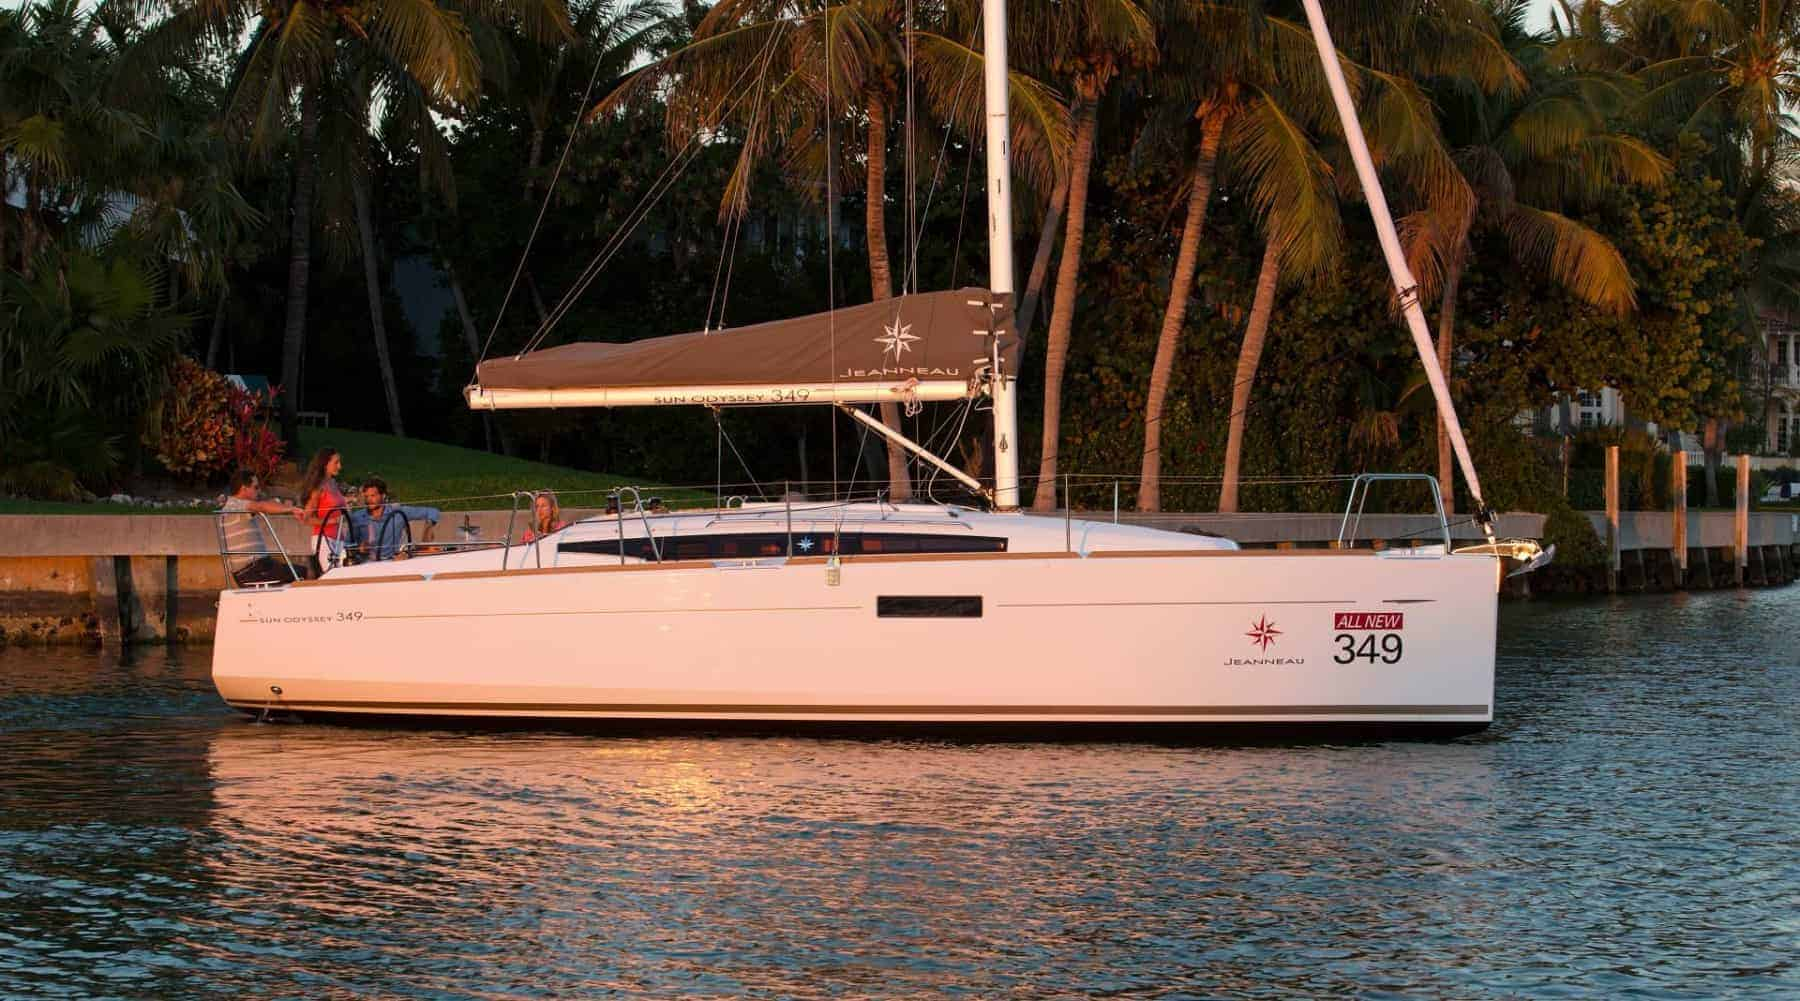 A docked Jeanneau Sun Odyssey 349 with the reflection of the sunset on it